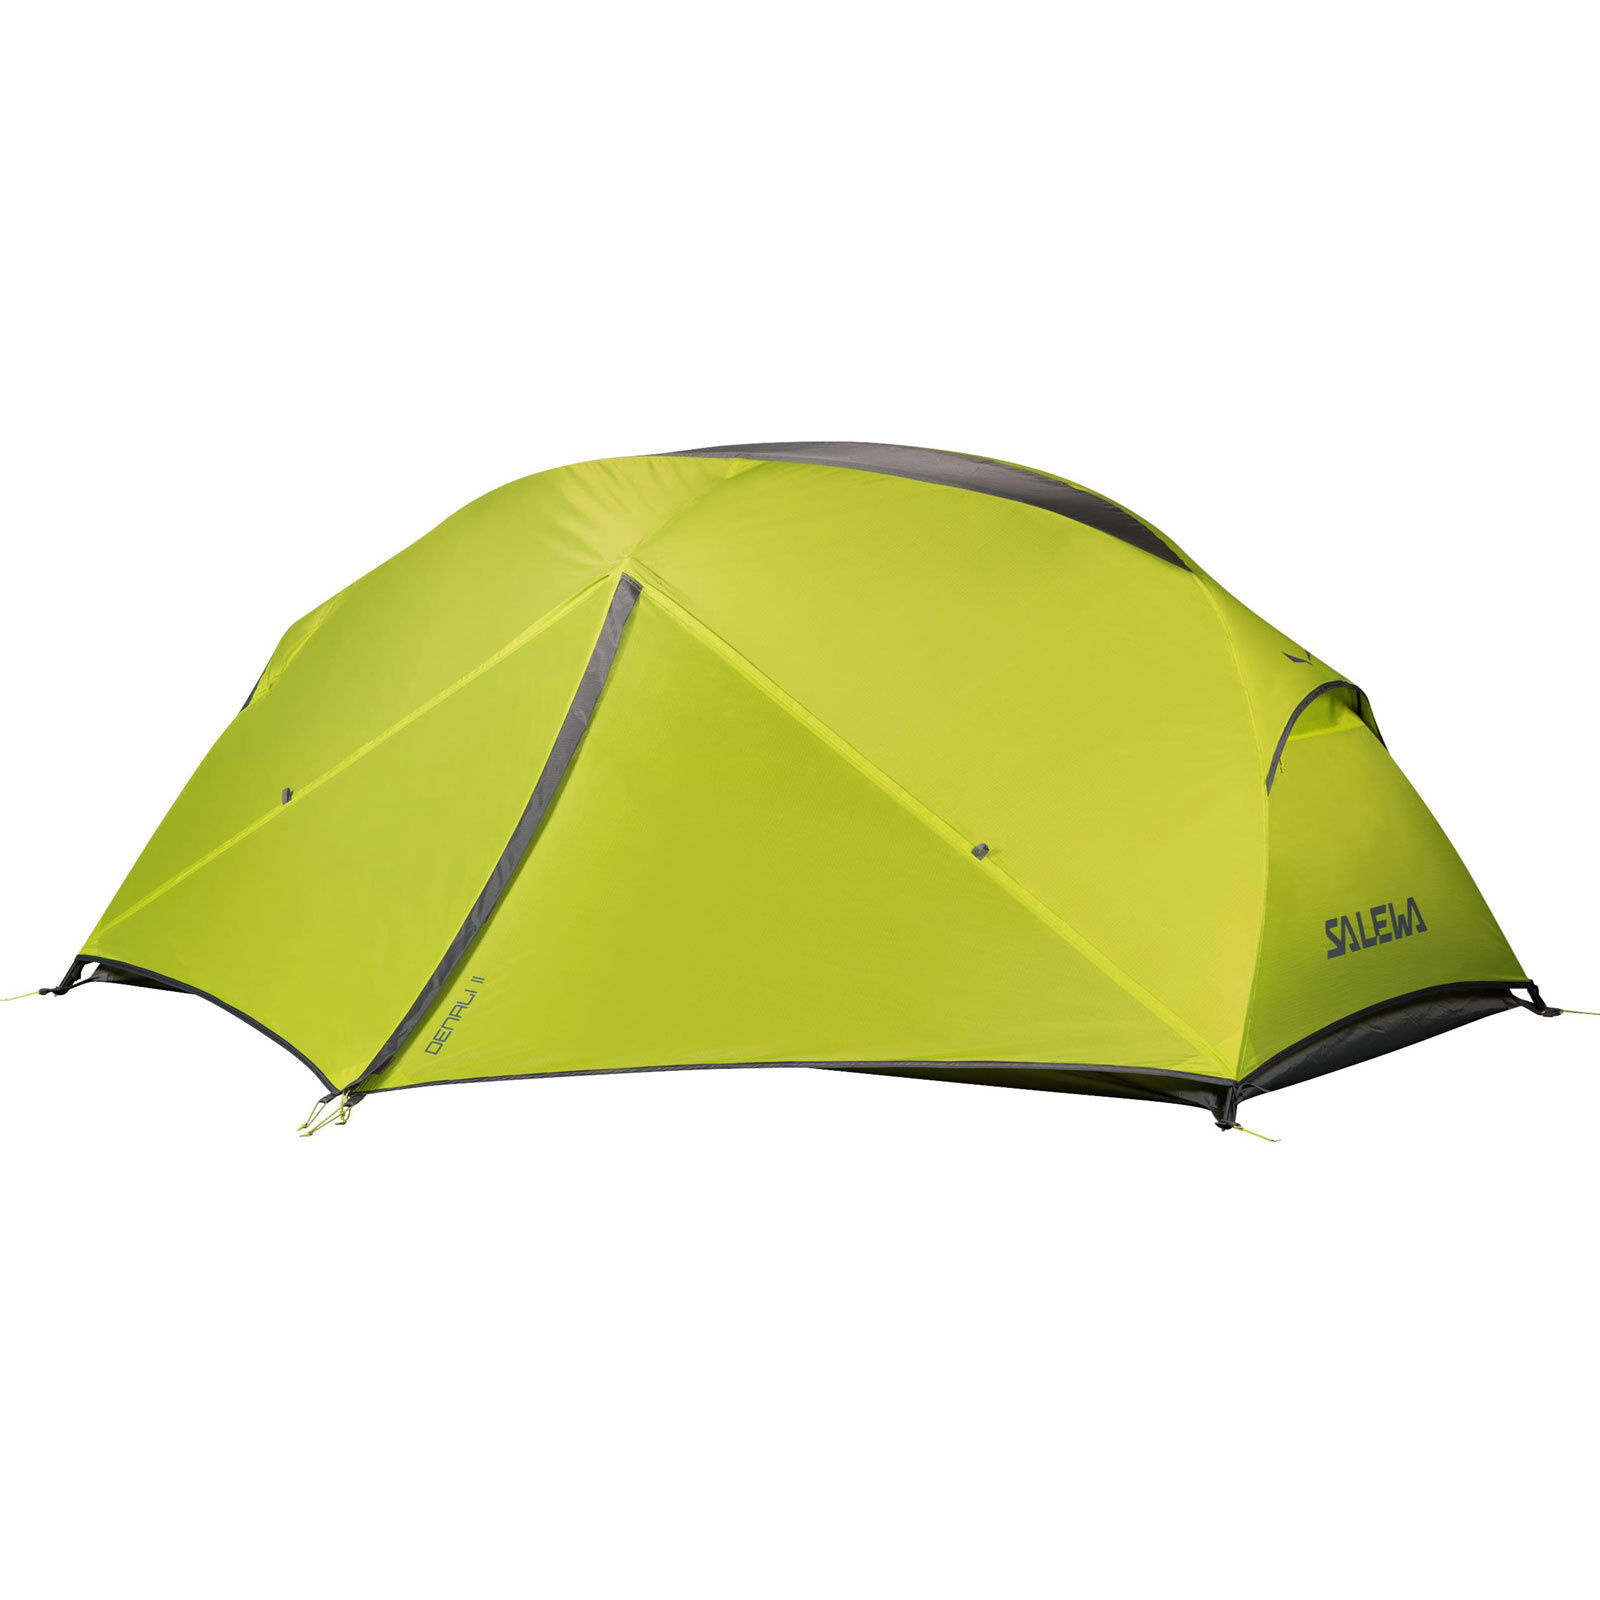 Salewa Denali 2 3 4  - Person Tent Dome Tent Hiking Tent Camping New  unique shape